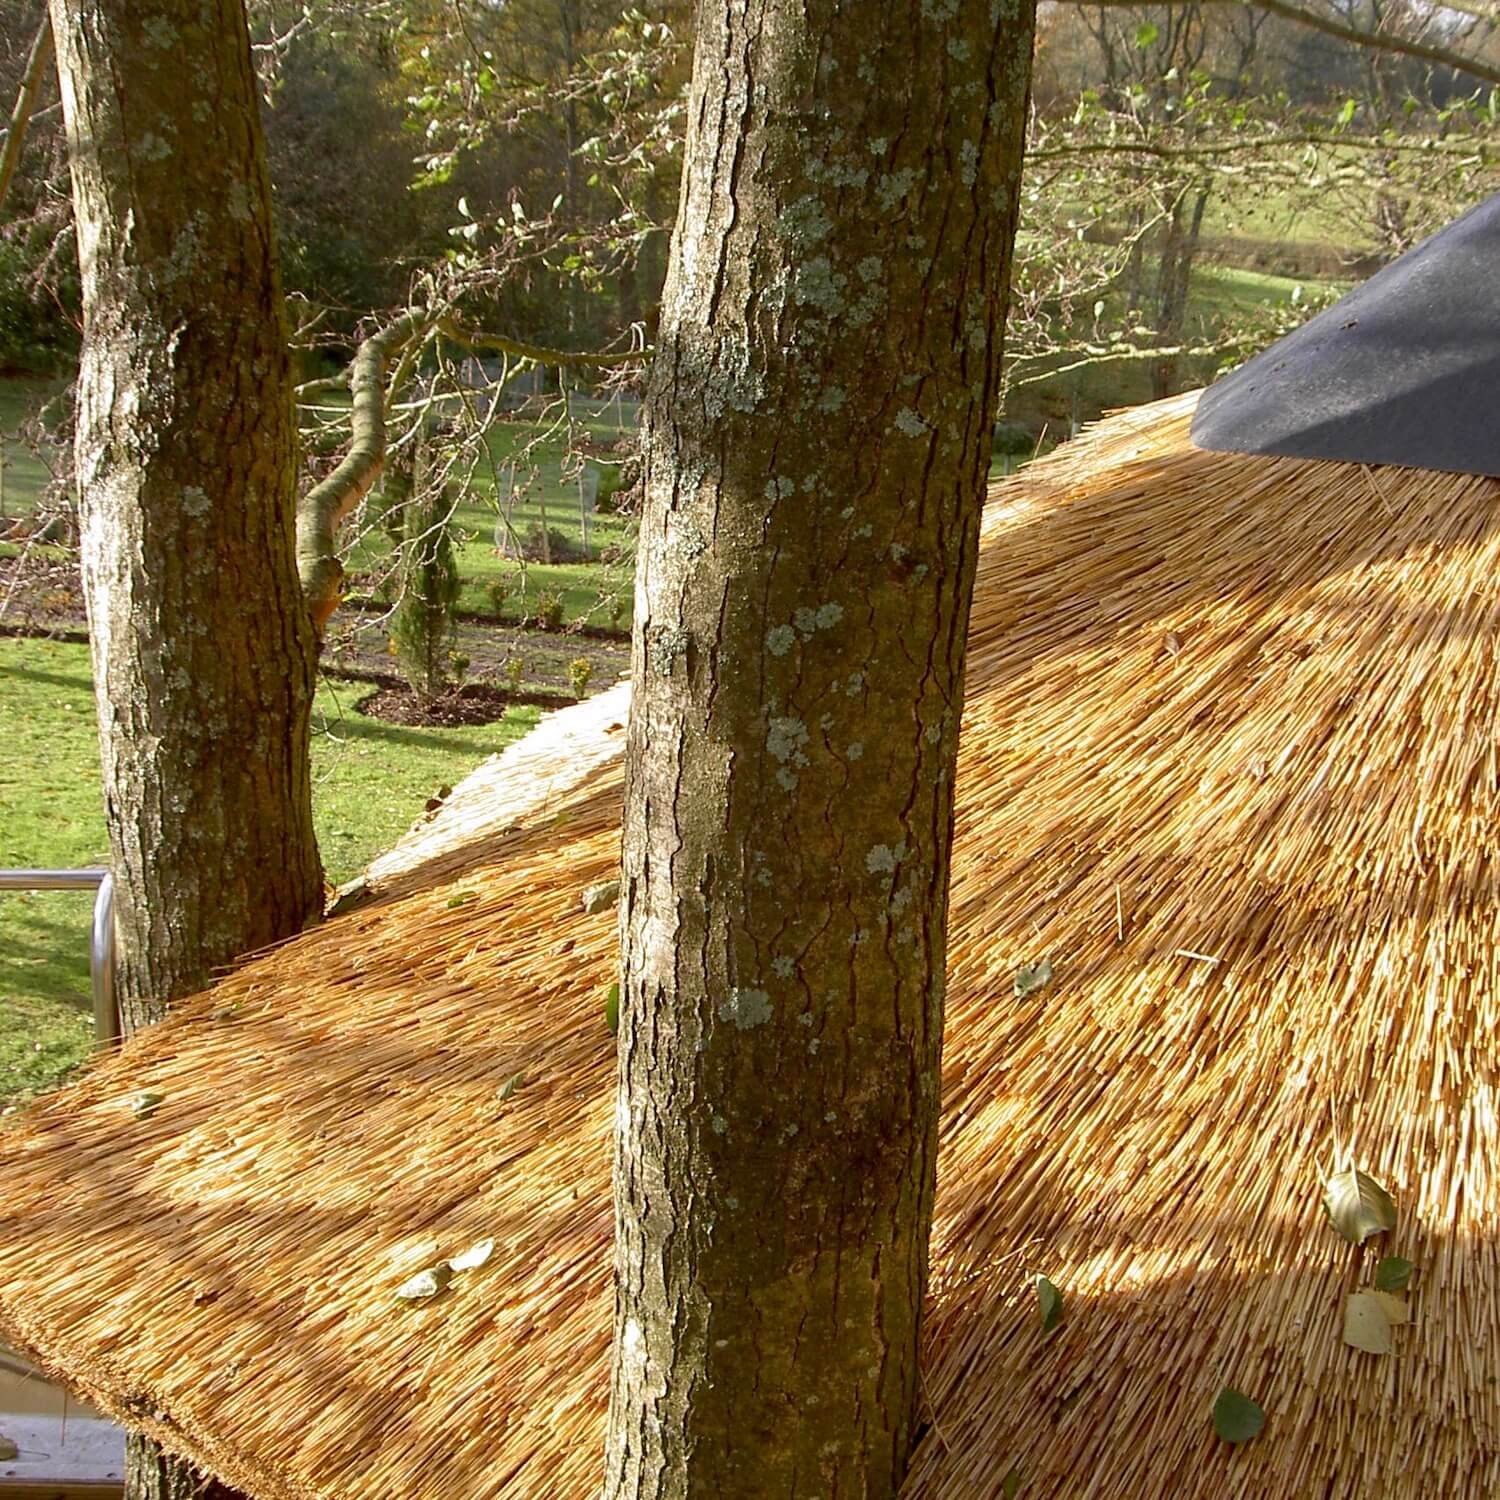 Trees coming through a thatched treehouse roof